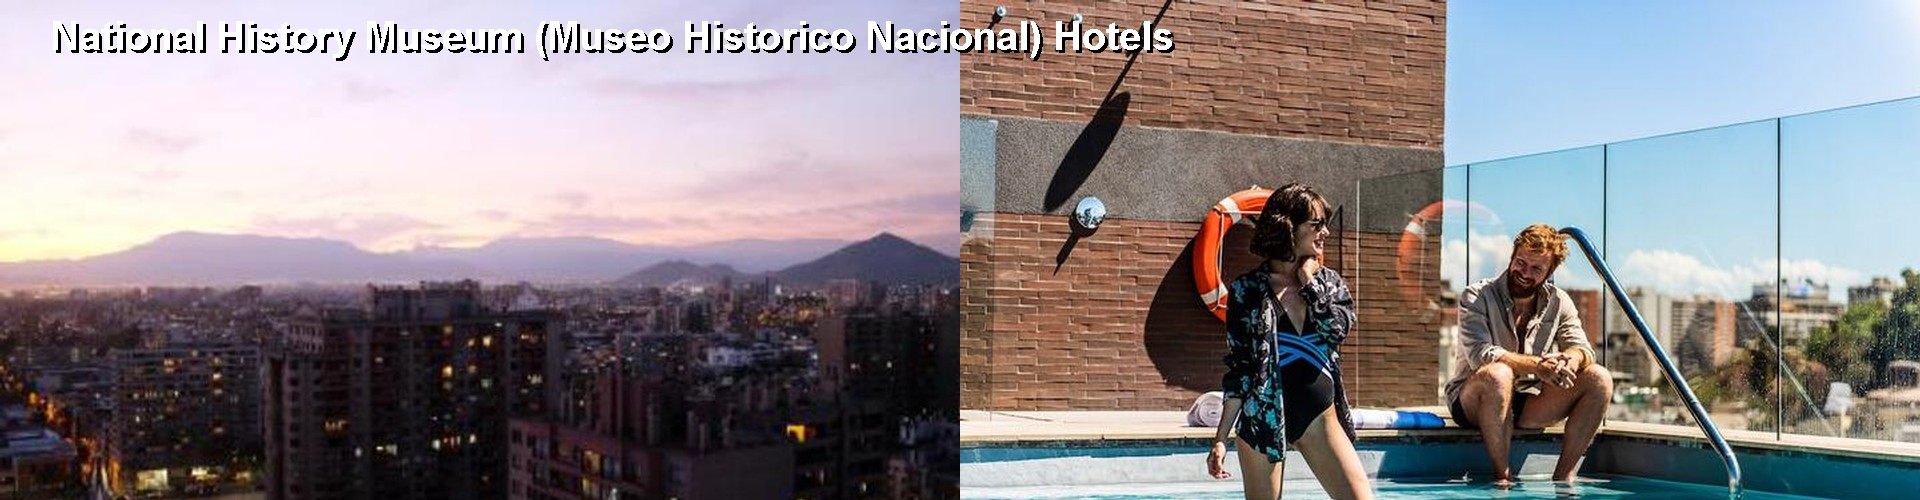 5 Best Hotels near National History Museum (Museo Historico Nacional)